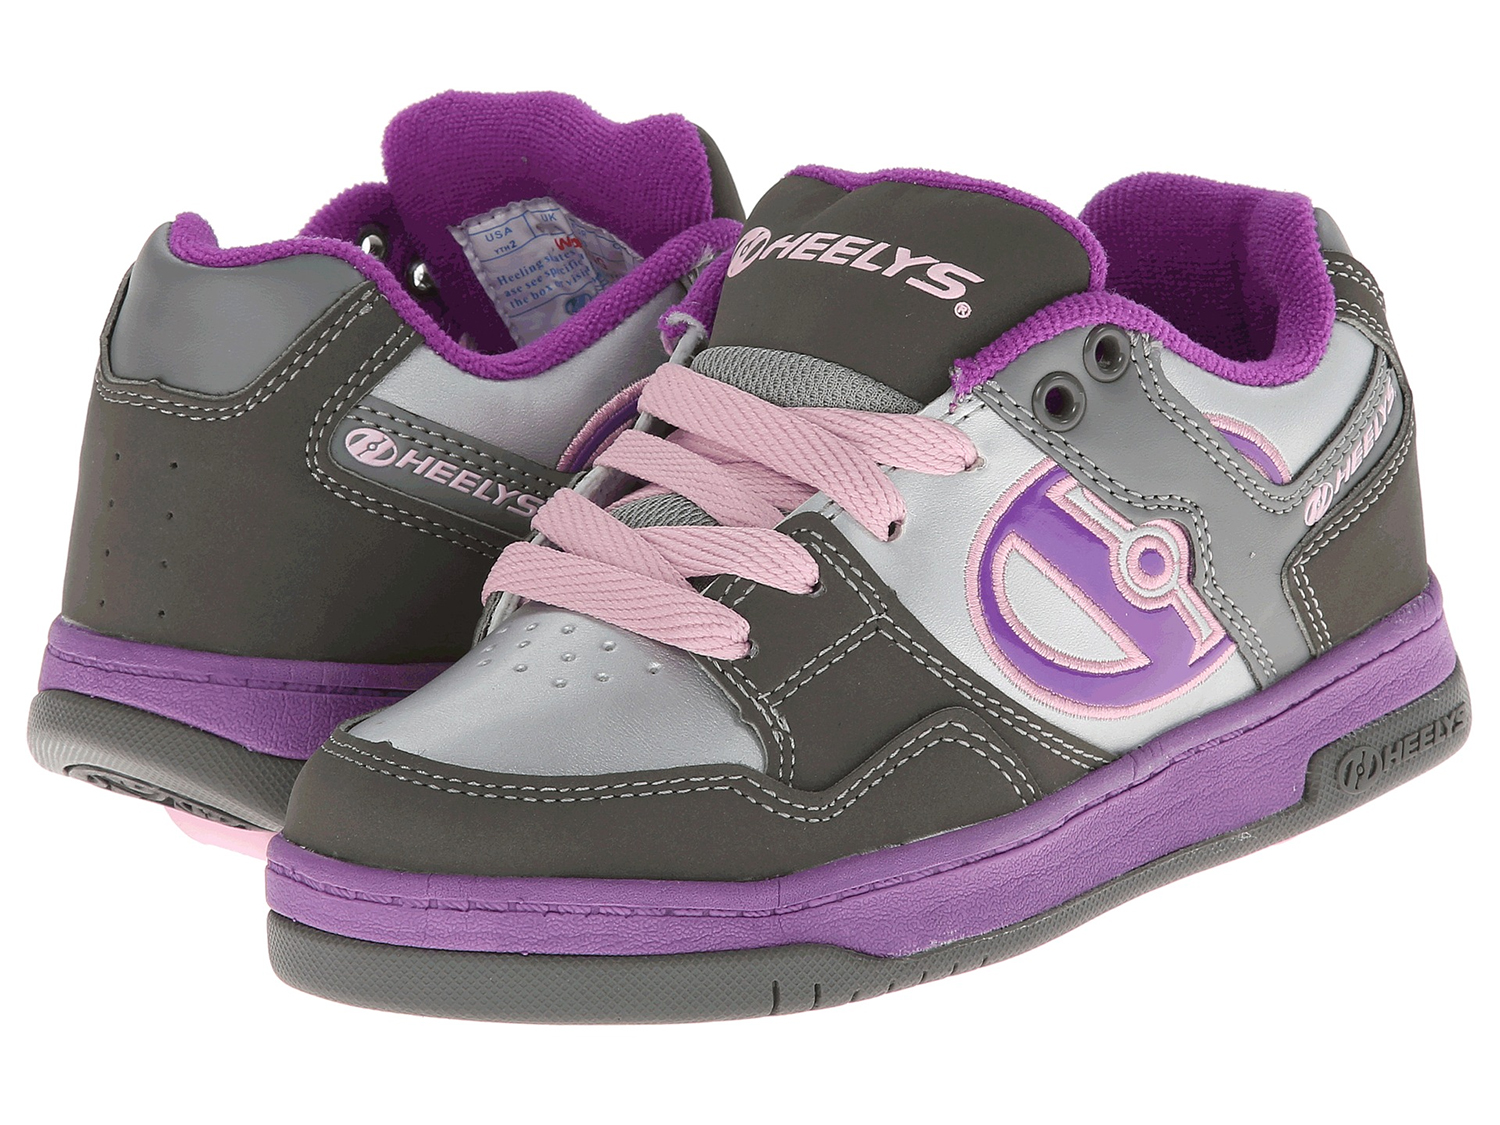 Where Can I Buy Heelys Roller Shoes